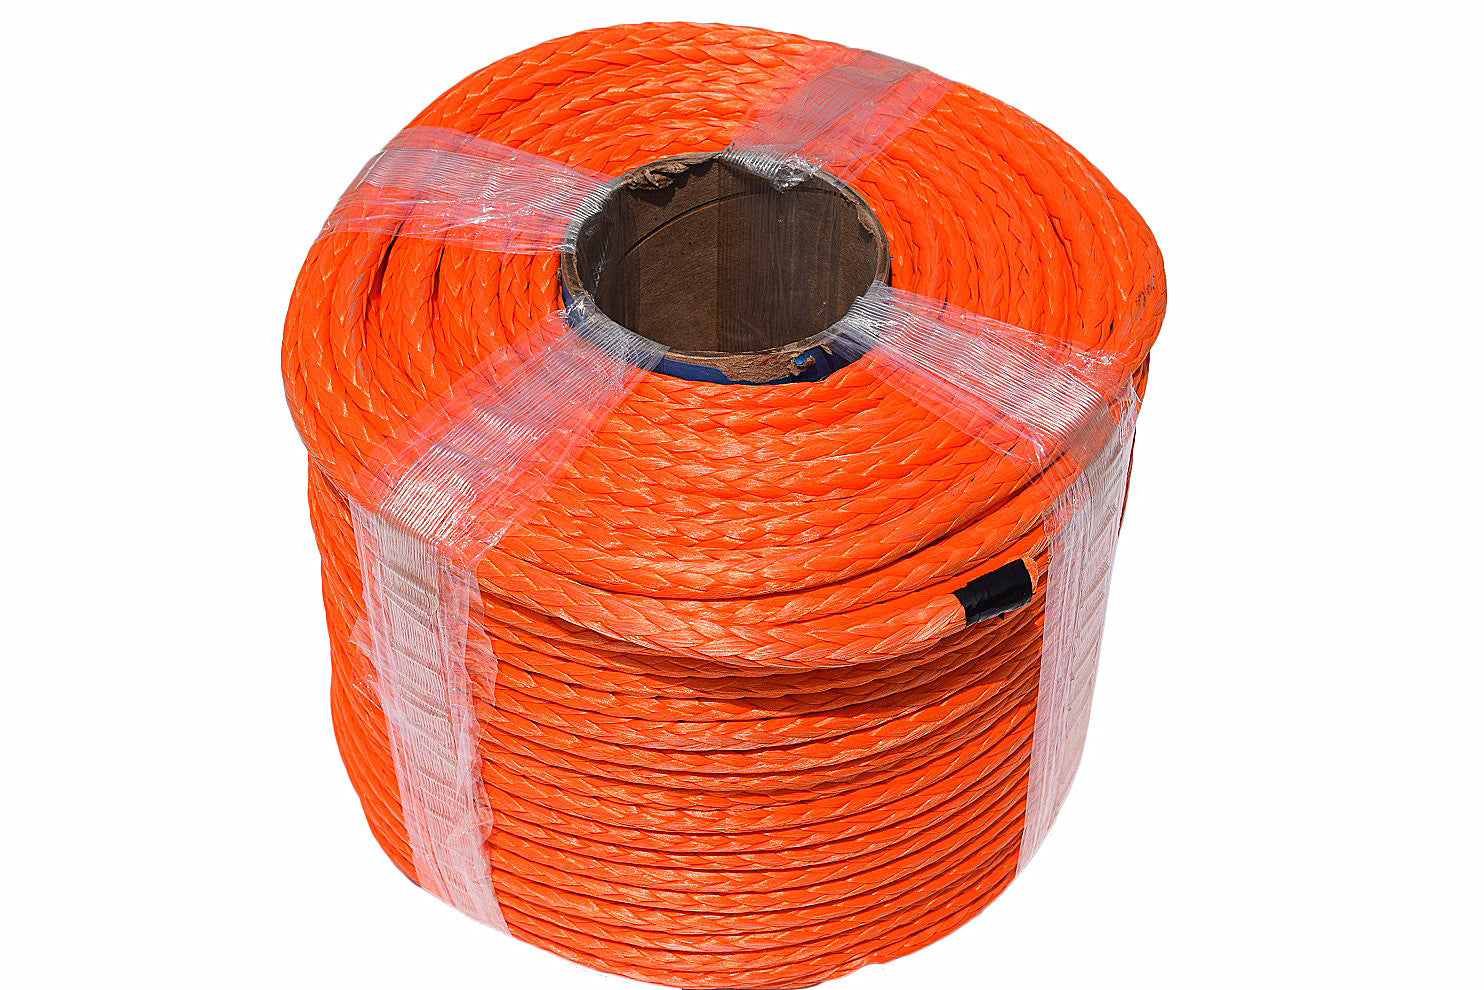 10mm*100m Synthetic Rope,UHMWPE Rope,ATV Winch Cable,Plasma Winch Rope for Off-road